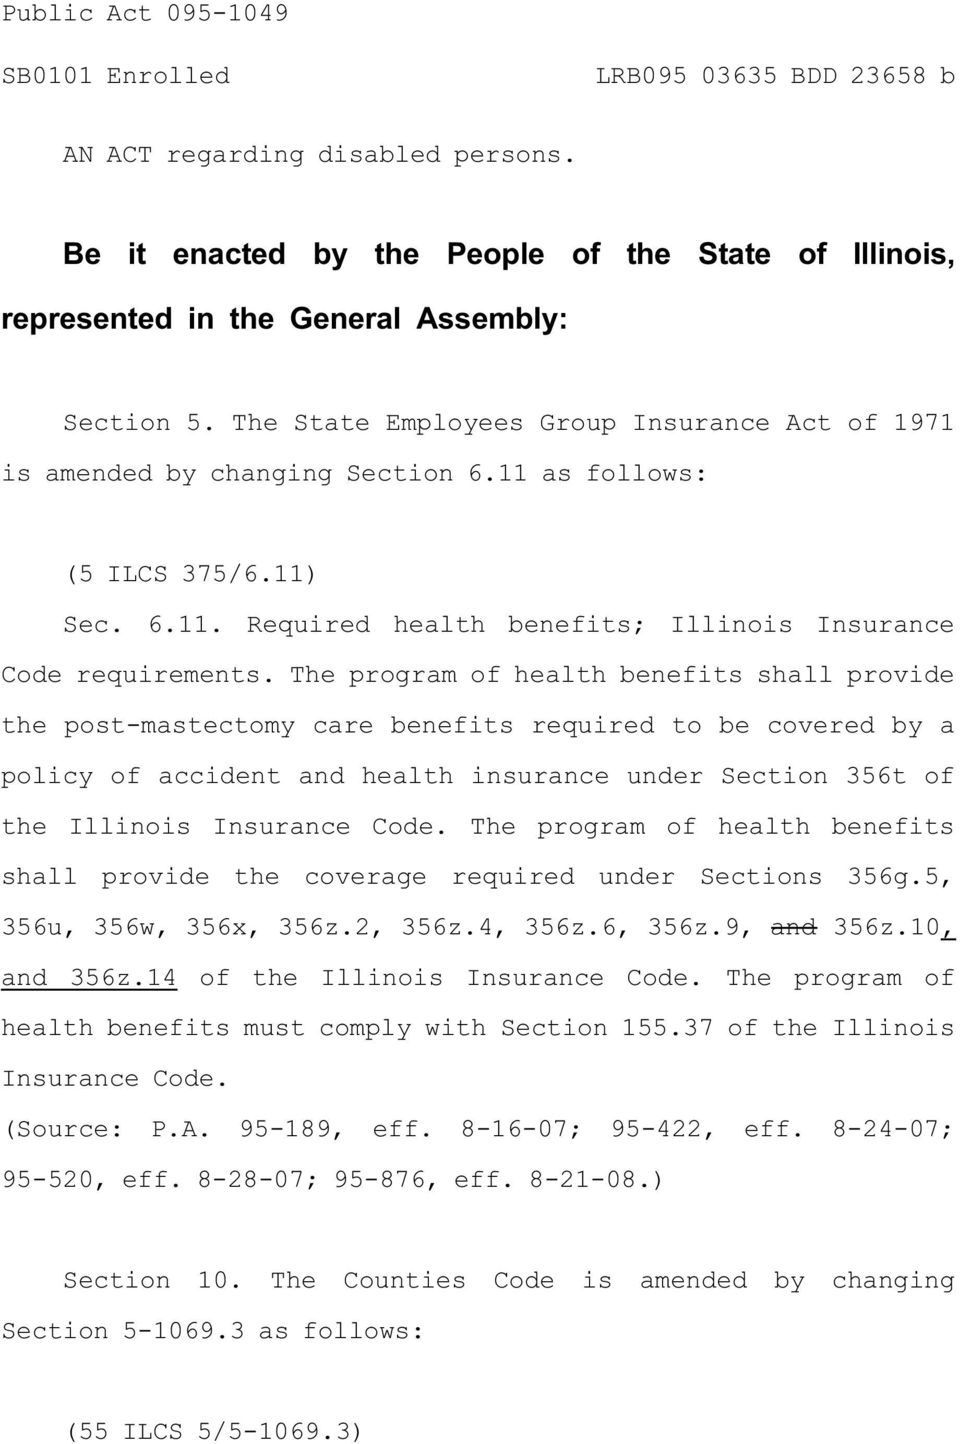 The program of health benefits shall provide the post-mastectomy care benefits required to be covered by a policy of accident and health insurance under Section 356t of the Illinois Insurance Code.